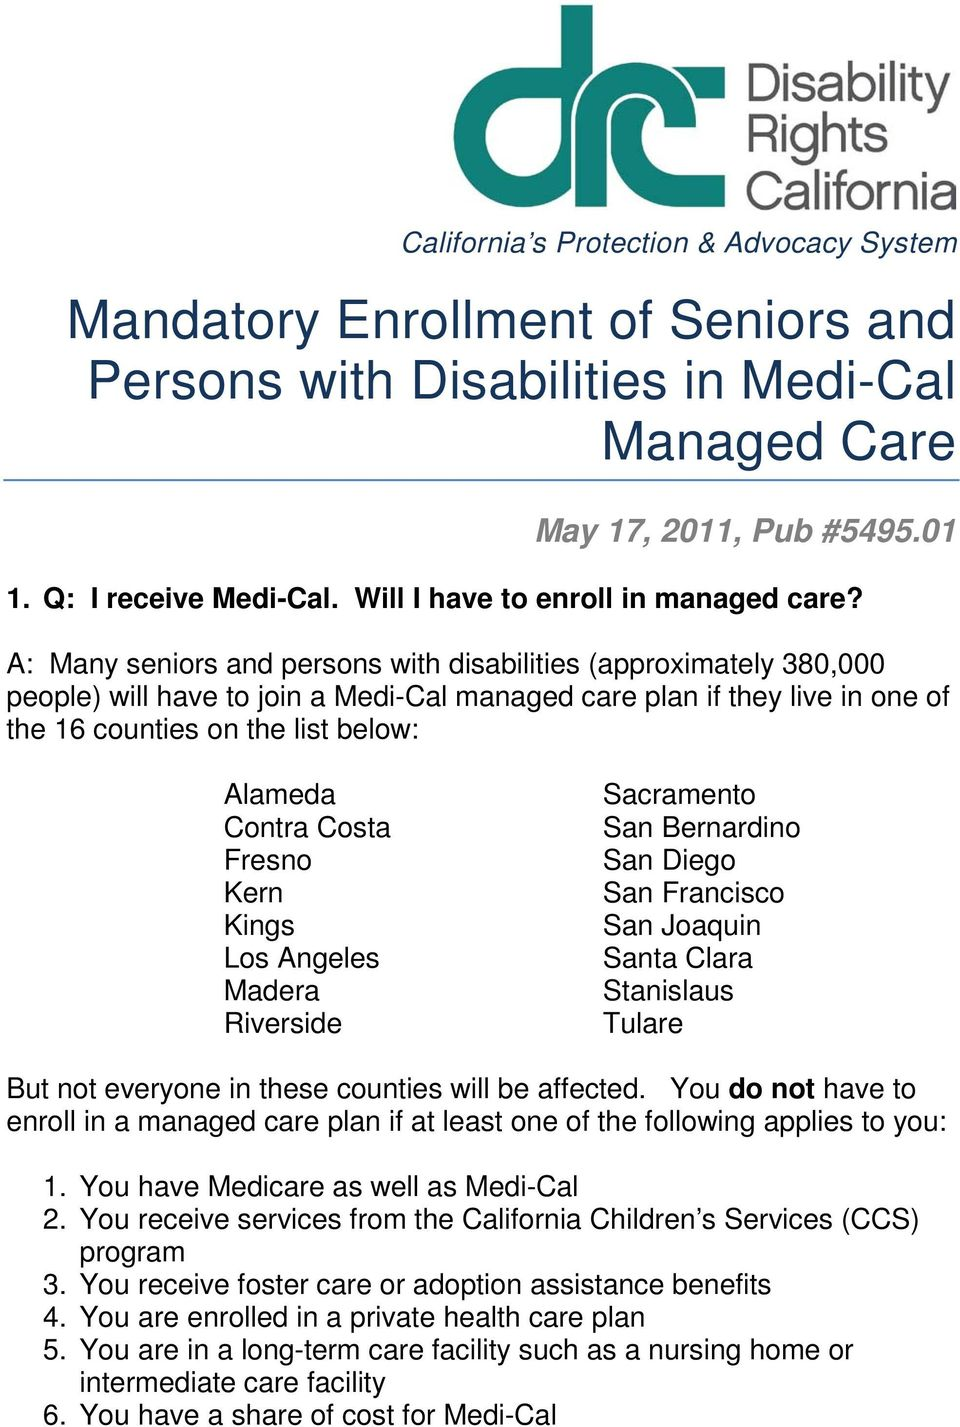 A: Many seniors and persons with disabilities (approximately 380,000 people) will have to join a Medi-Cal managed care plan if they live in one of the 16 counties on the list below: Alameda Contra